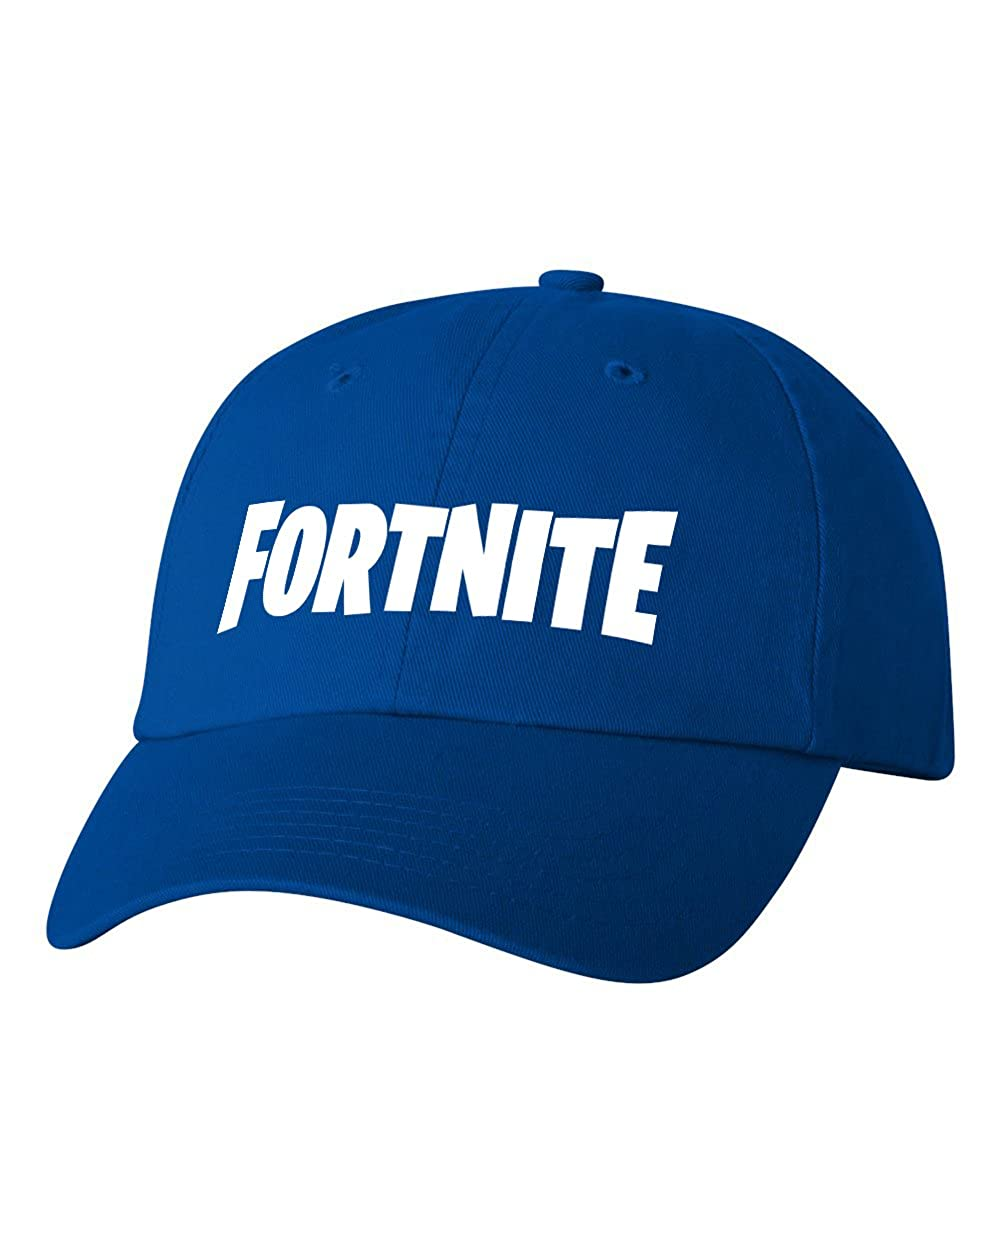 theSTASH Clothing Company FORTNITE Gamers Dad Hat Baseball Cap Adjustable New - Blue